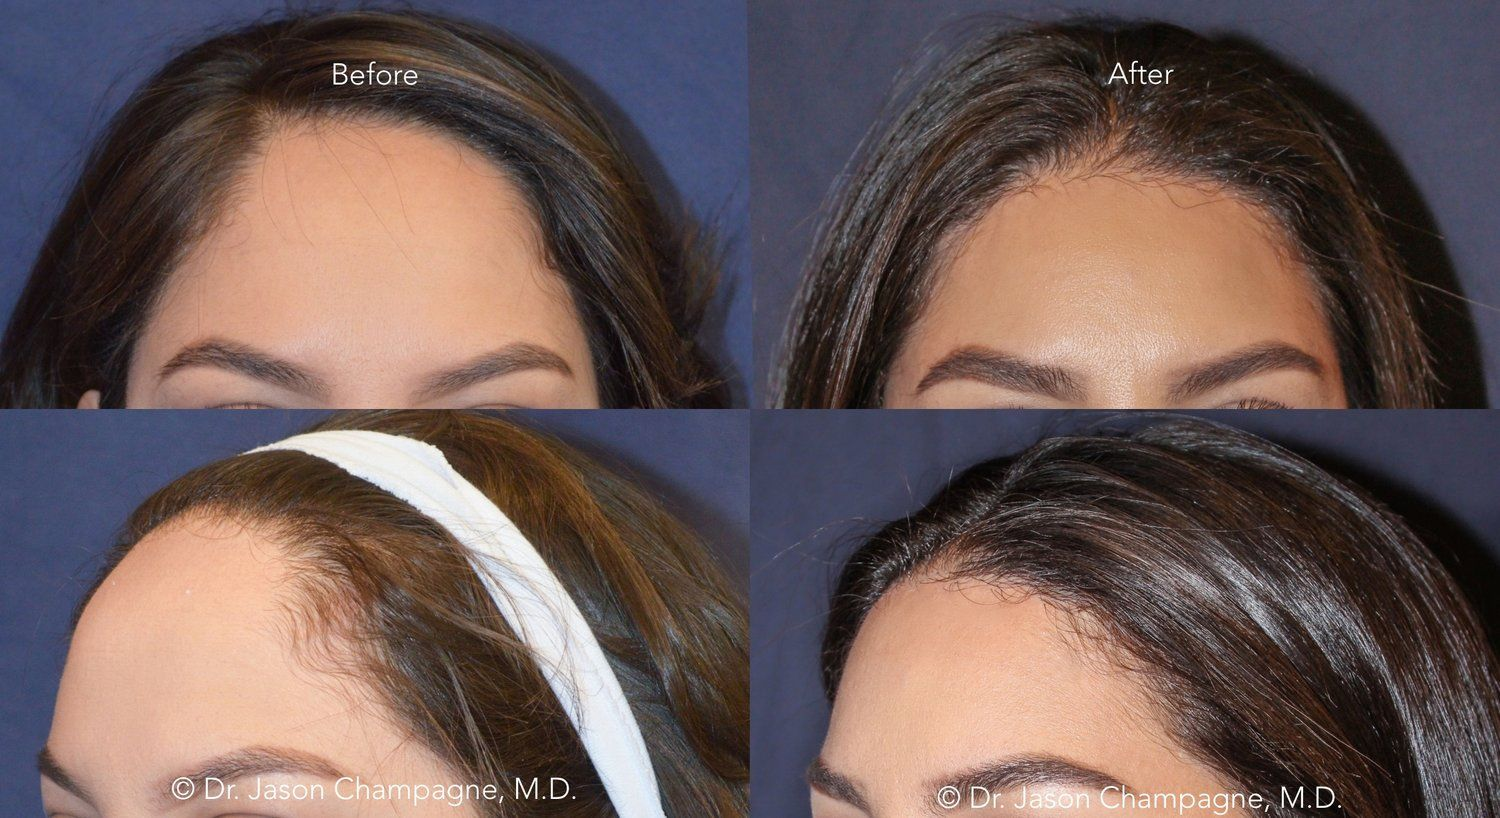 Dr Jason Champagne Hairline Lowering Before And After Forehead Reduction Surgery Hairline Forehead Reduction